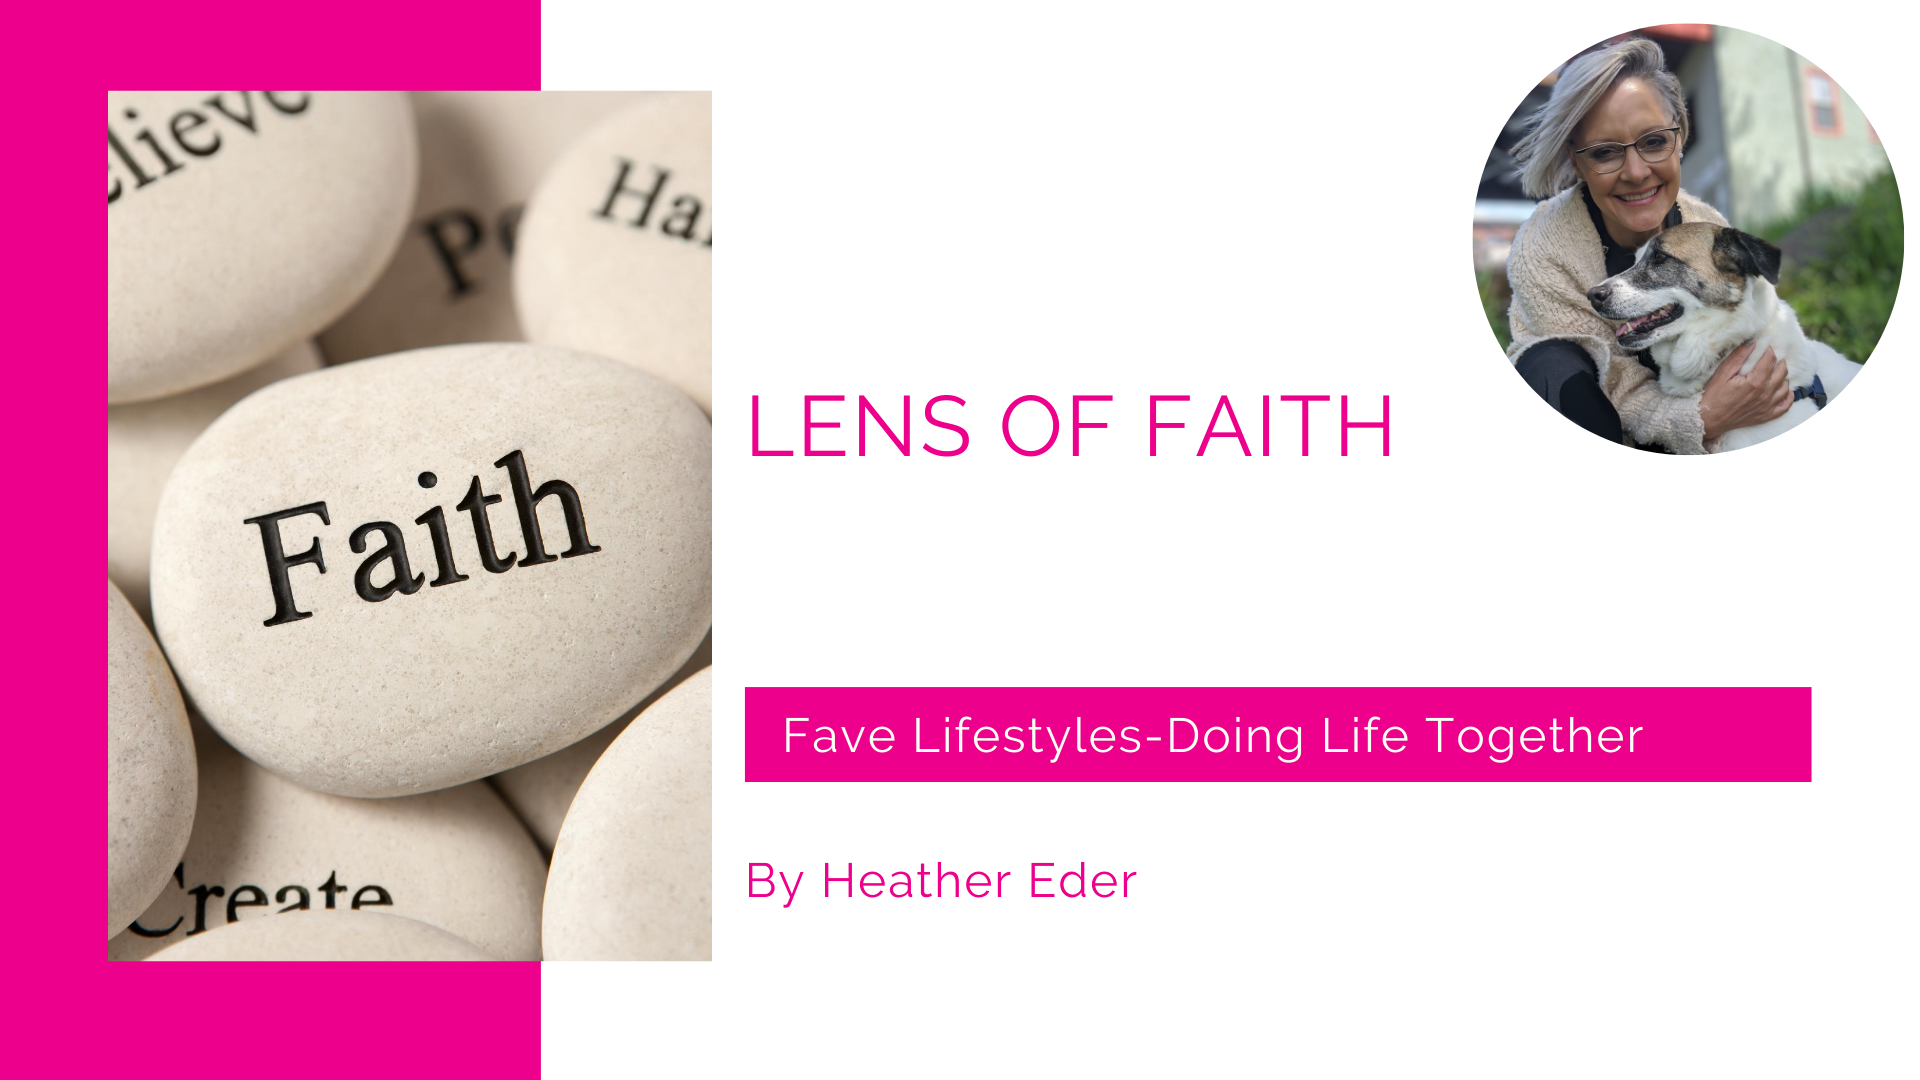 Lens of Faith